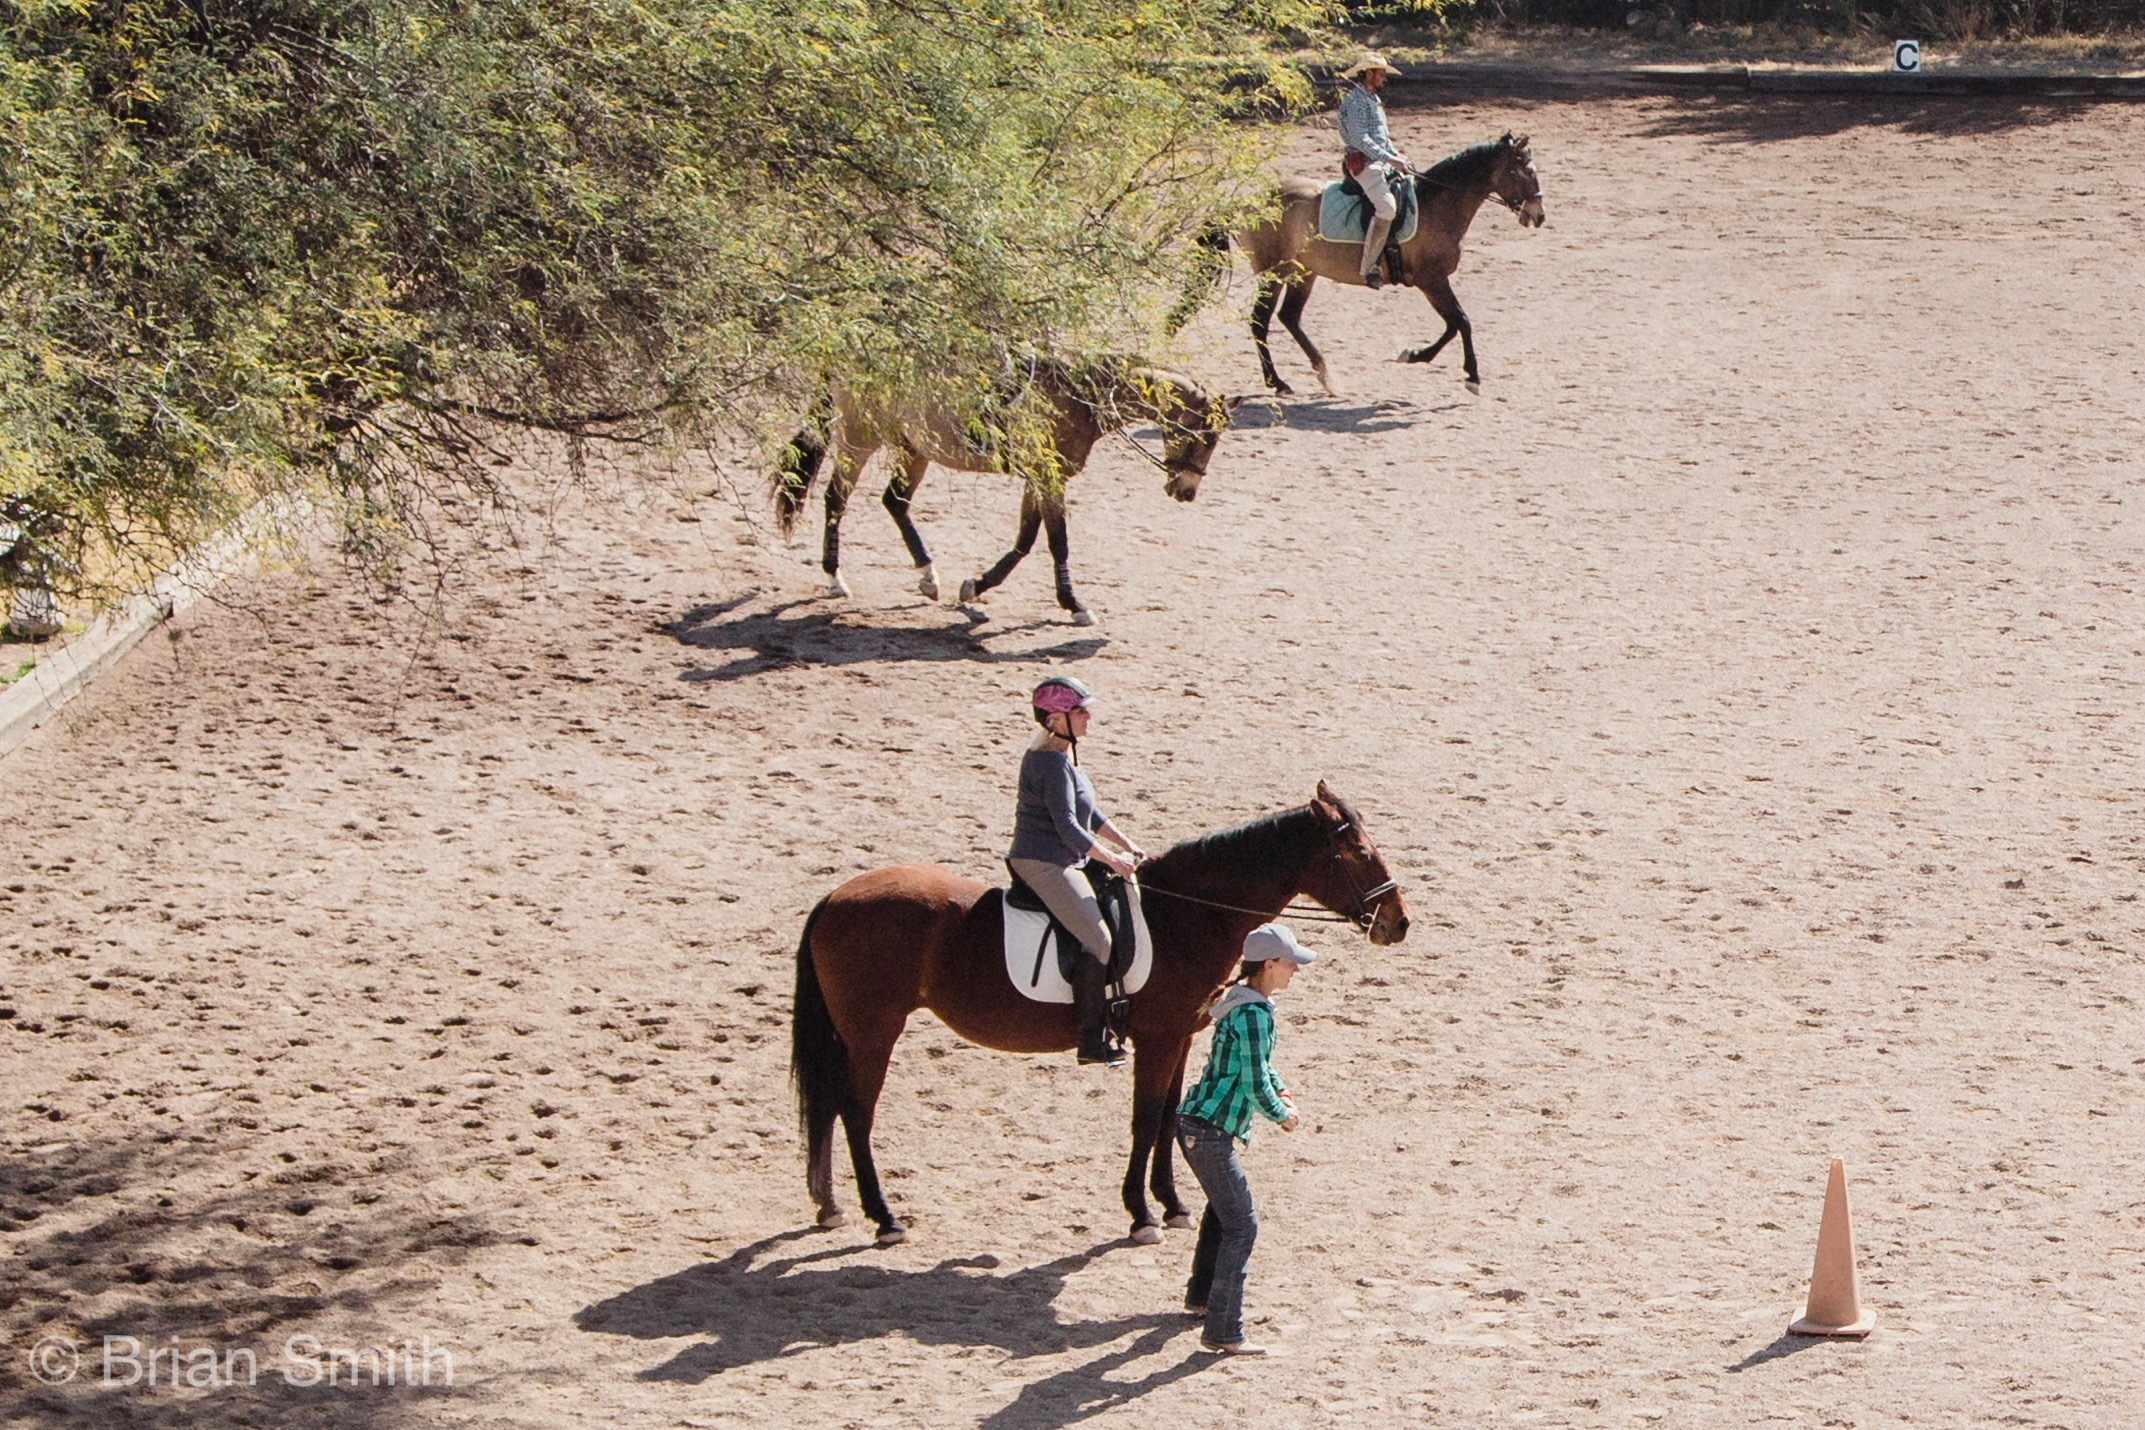 Riding lessons at the ranch